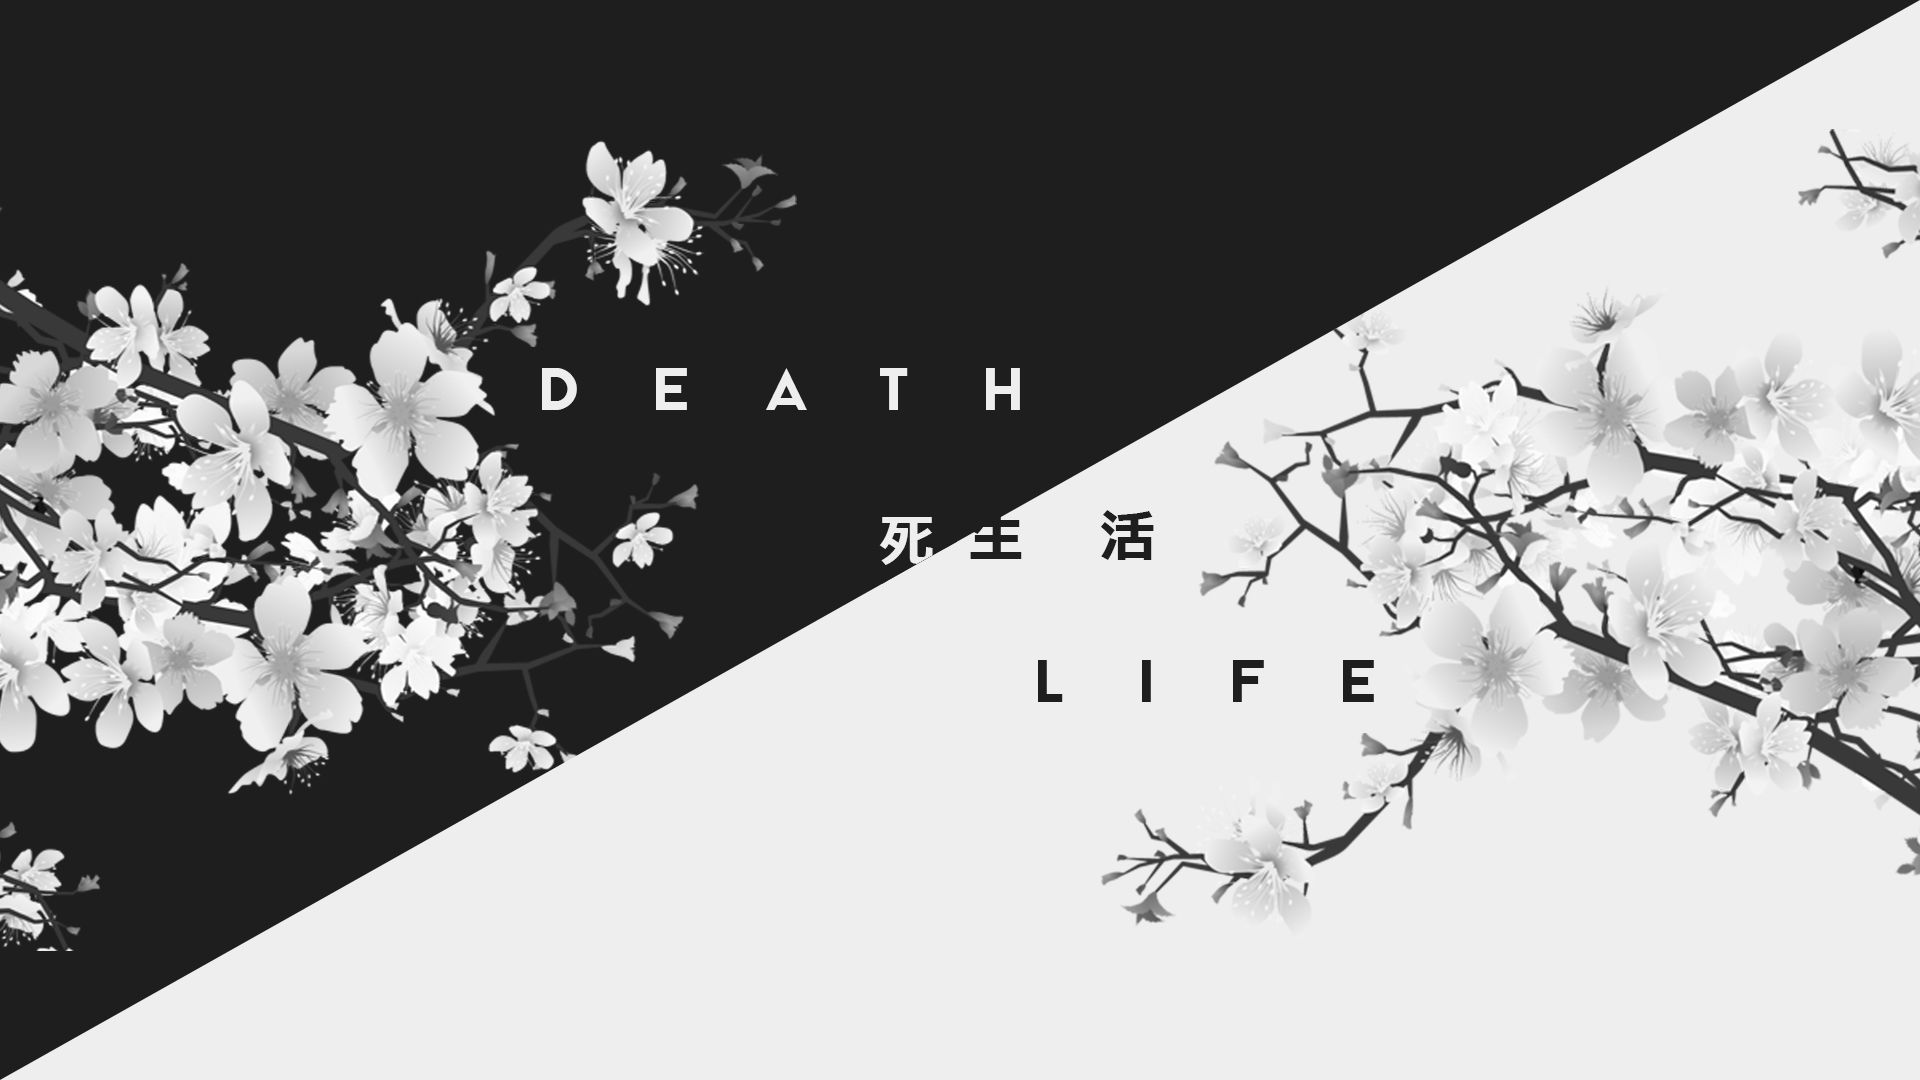 General 1920x1080 dark white life death kanji Japan